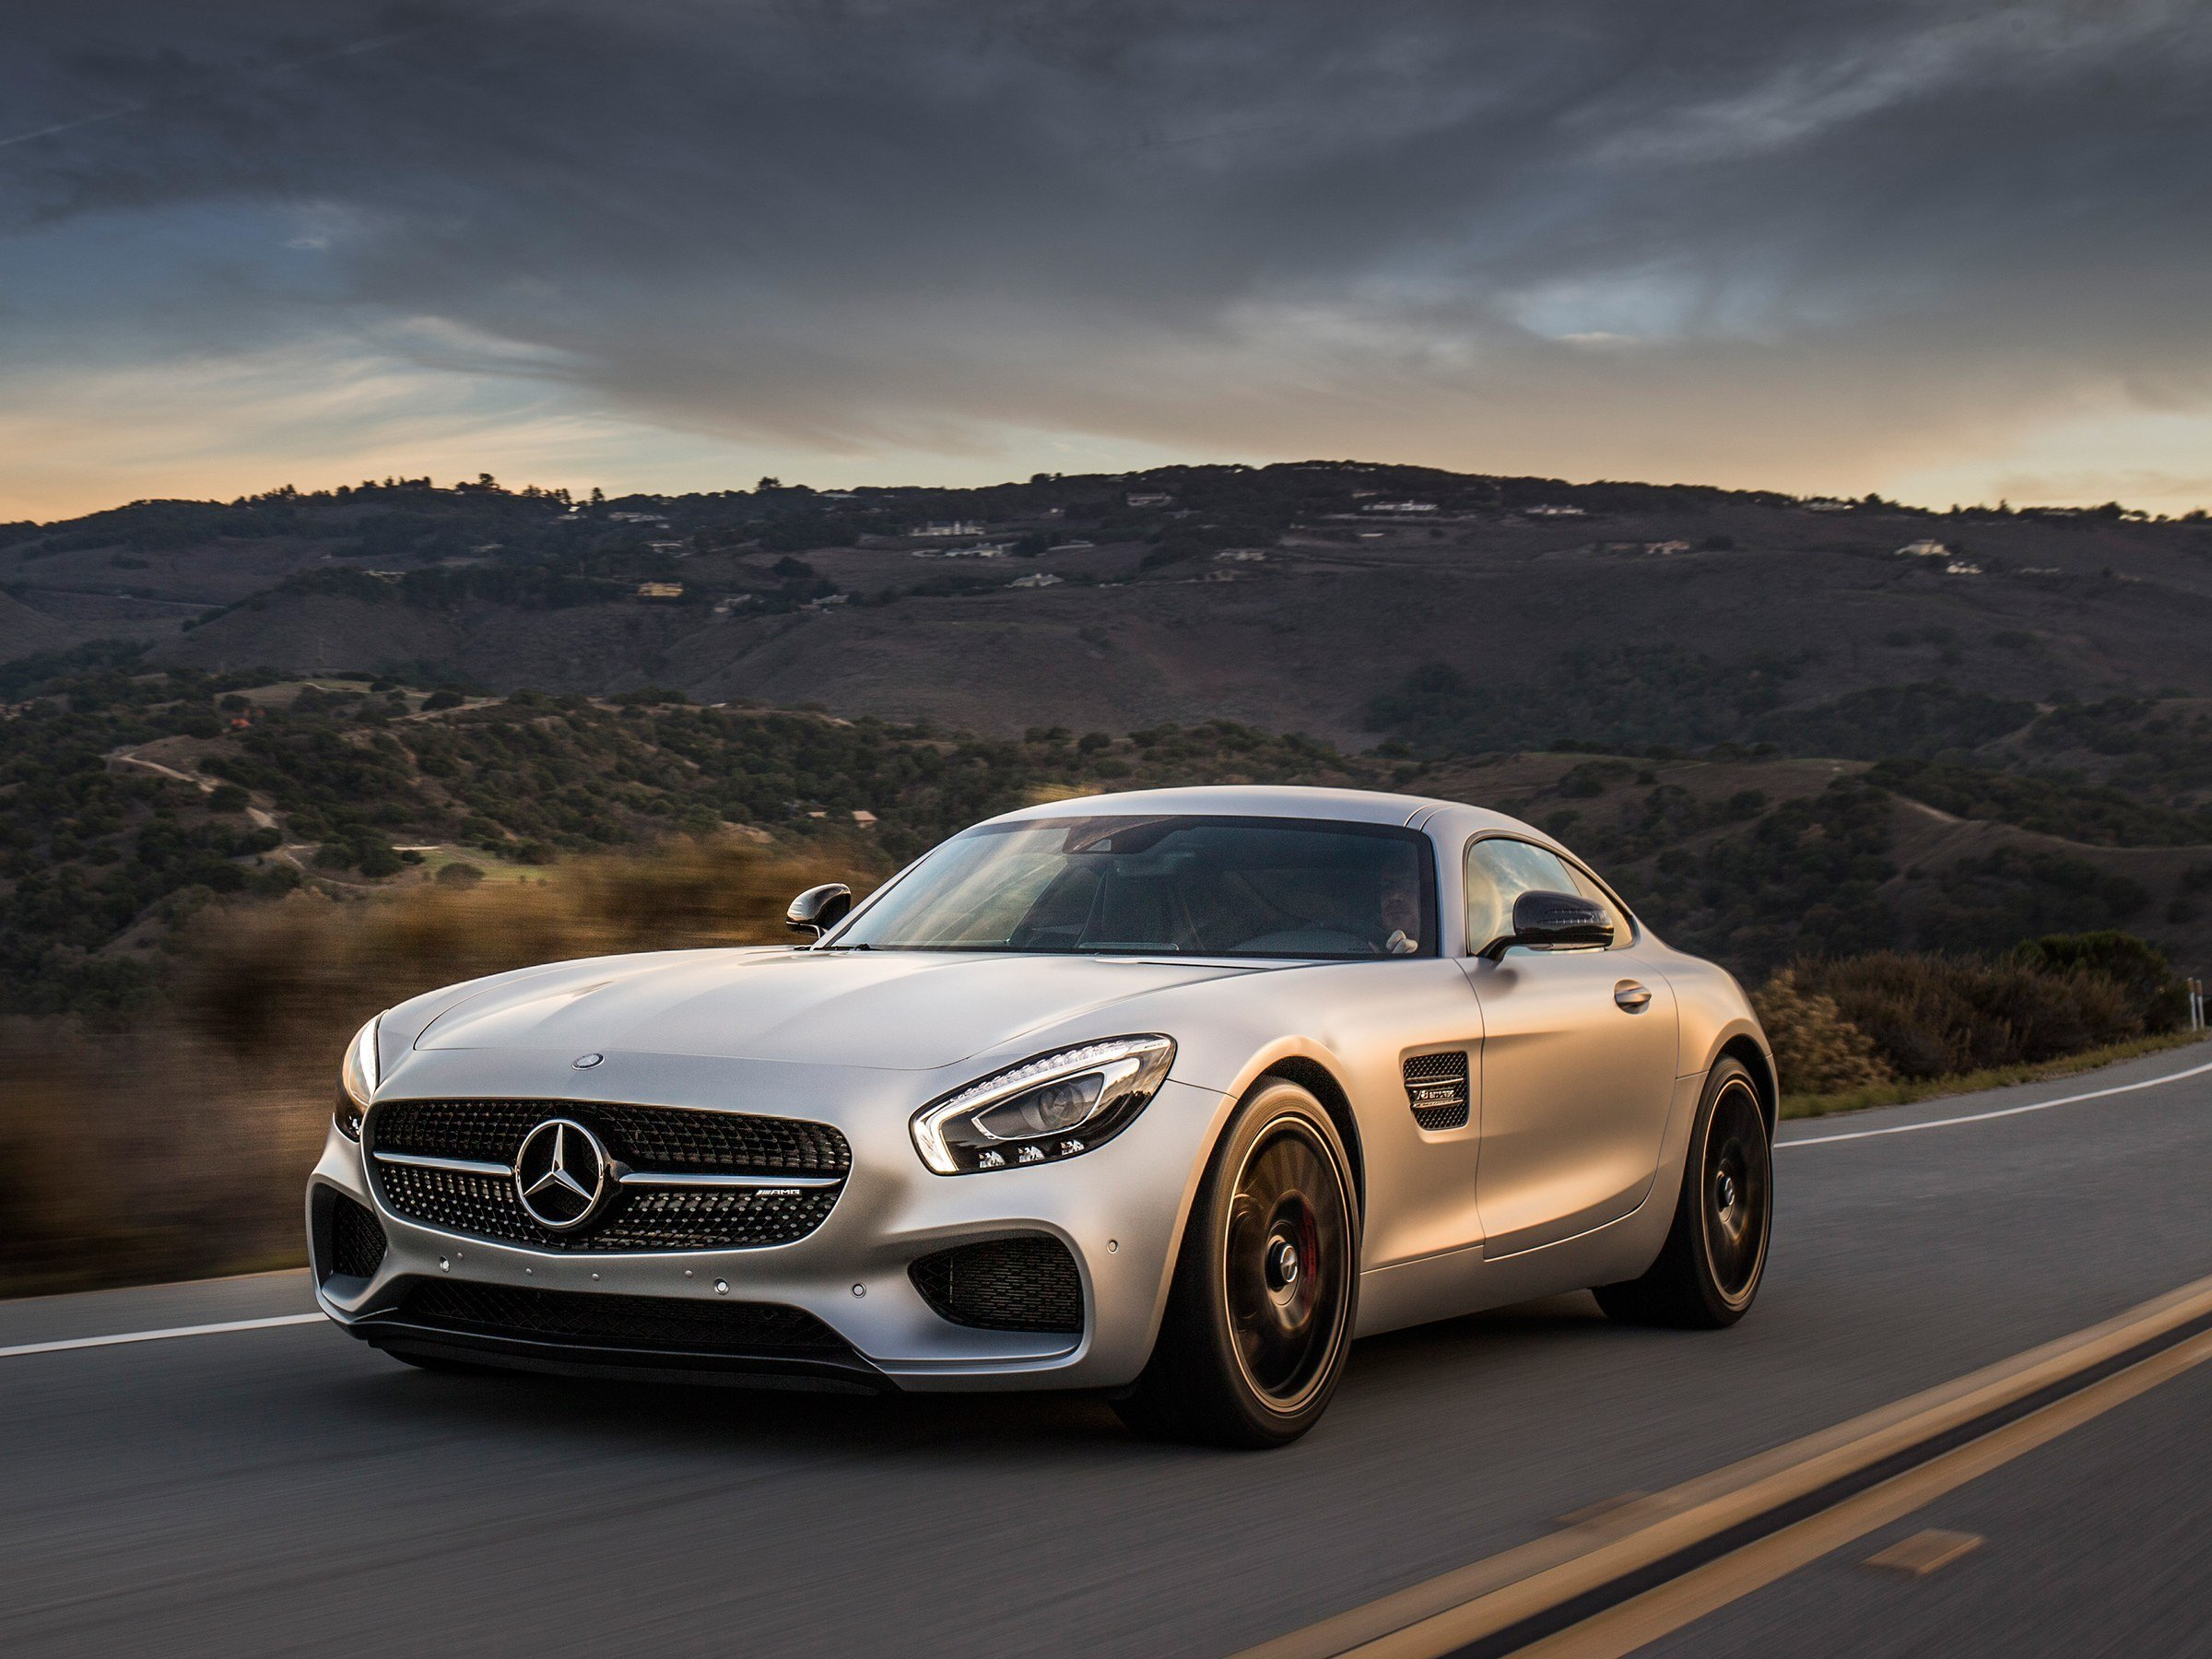 Latest The Glorious Gt S Heralds A New Era For Mercedes Sports Free Download